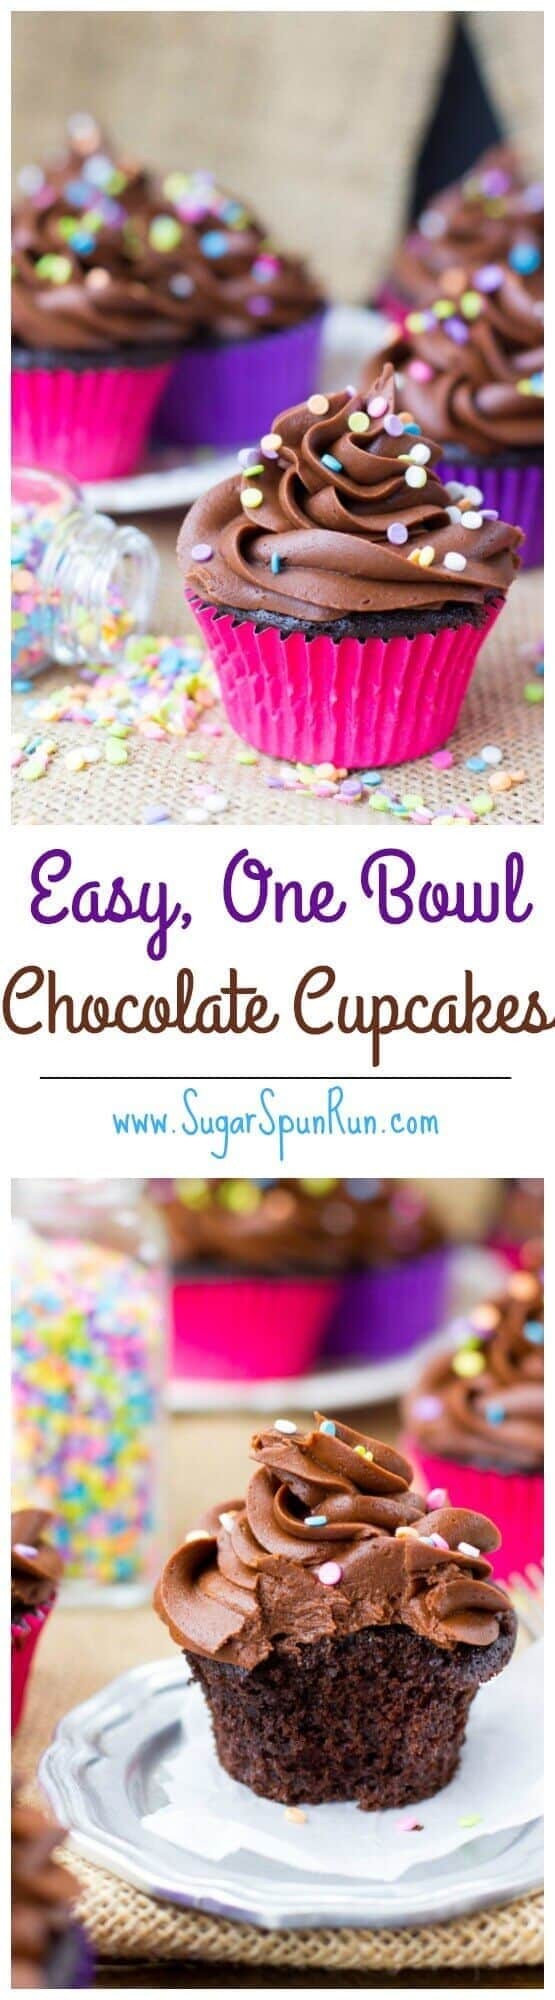 Ridiculously easy (only one bowl!) Chocolate Cupcakes via SugarSpunRun